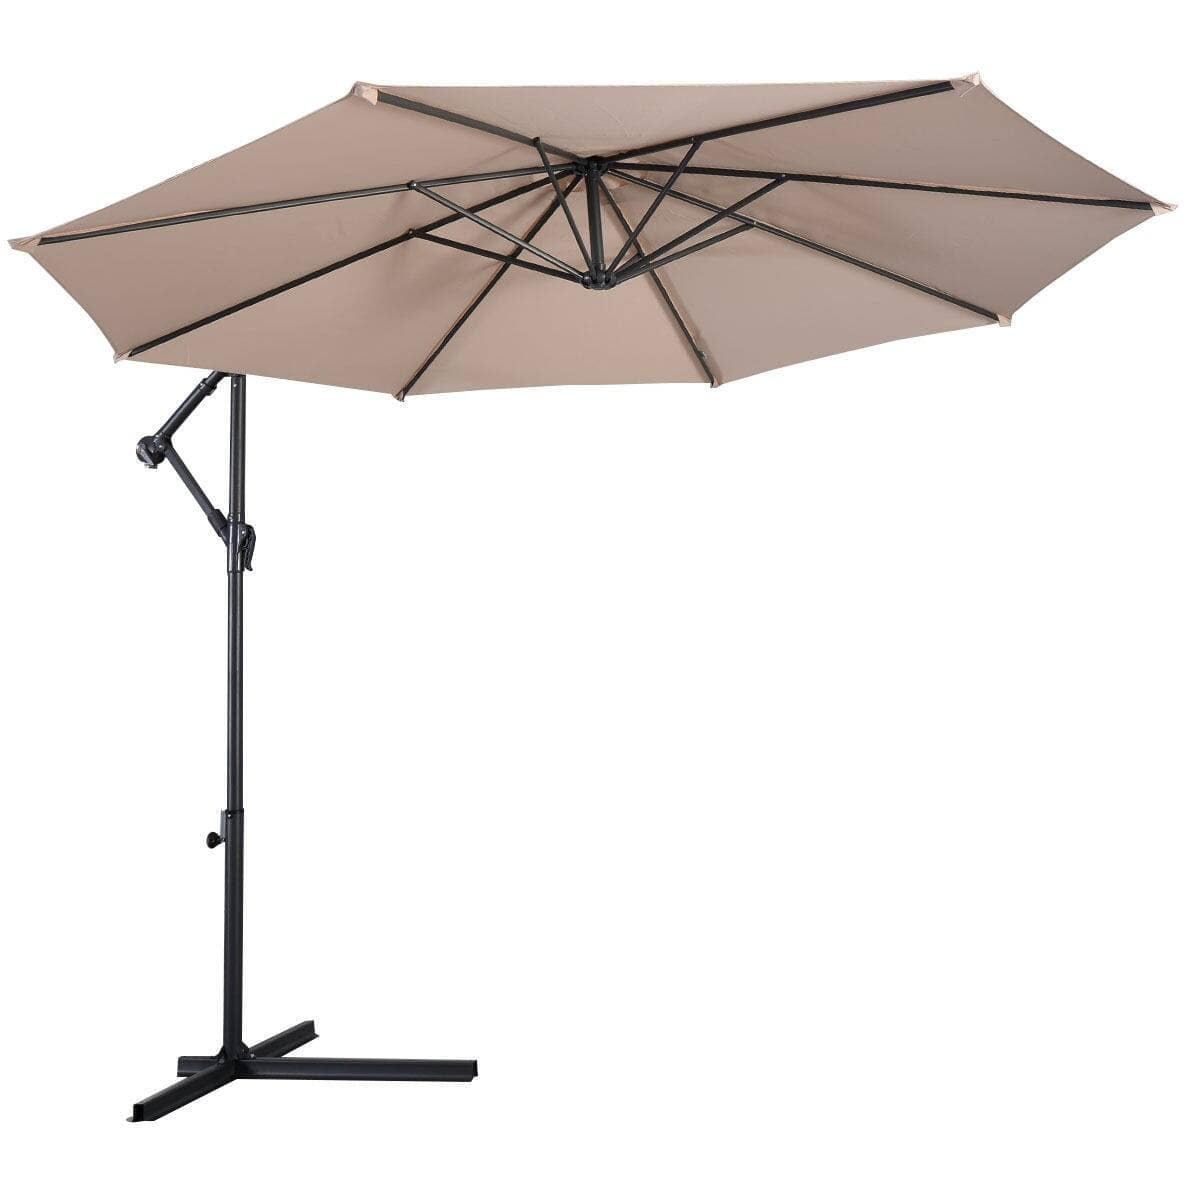 Costway 10' Patio Outdoor Sunshade Hanging Umbrella without Weight Base $77.95 + FS